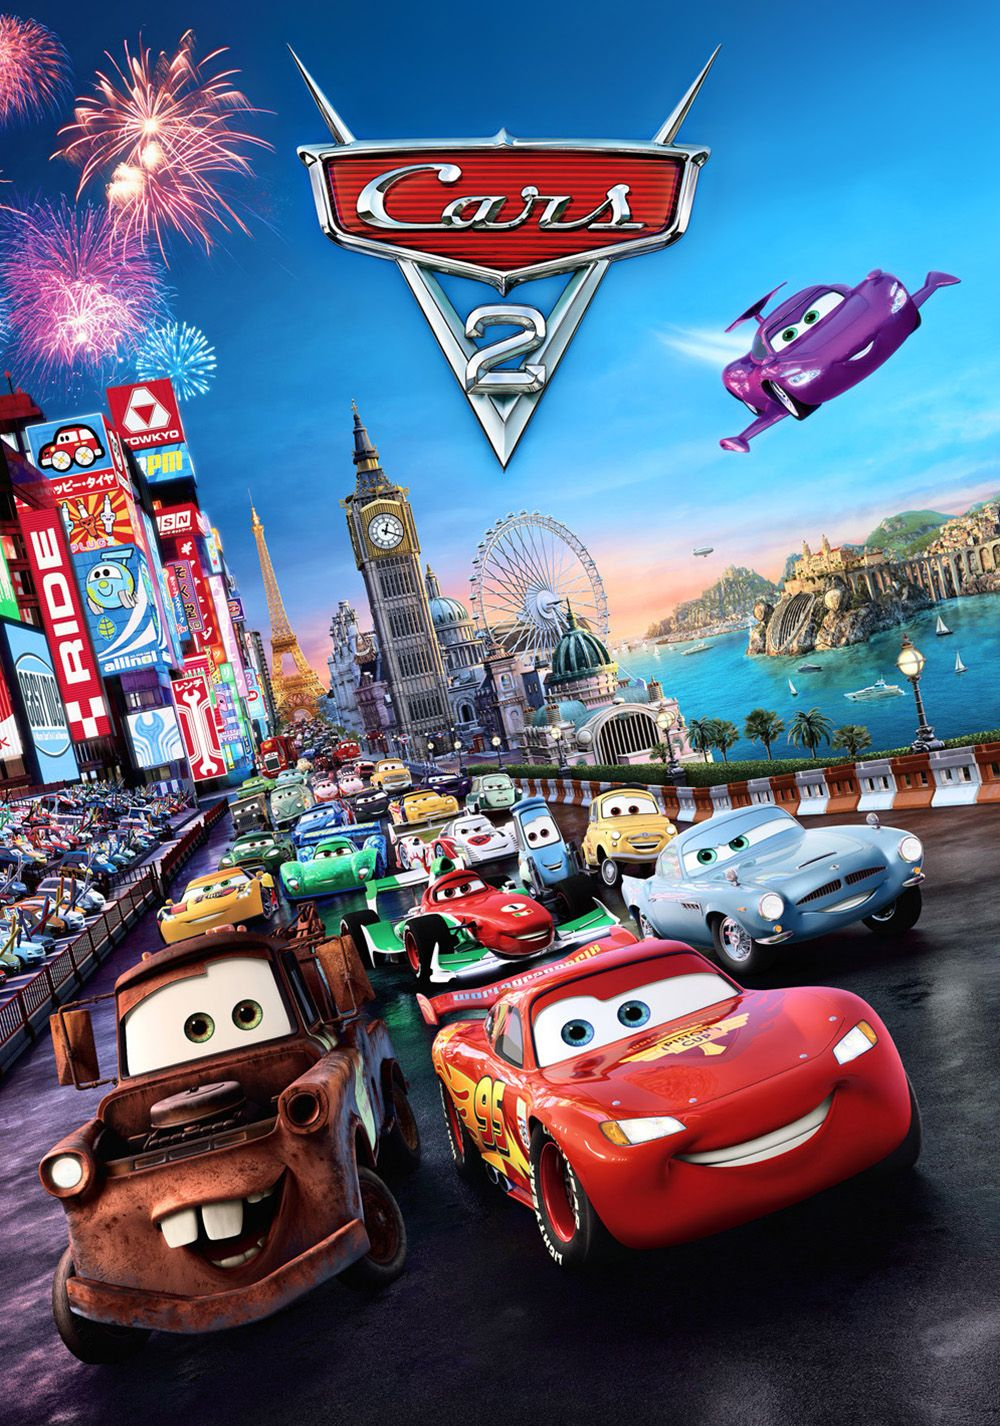 Cars Movie Free Download English and Hindi Dubbed ... |Cars Movie Poster Free Candy